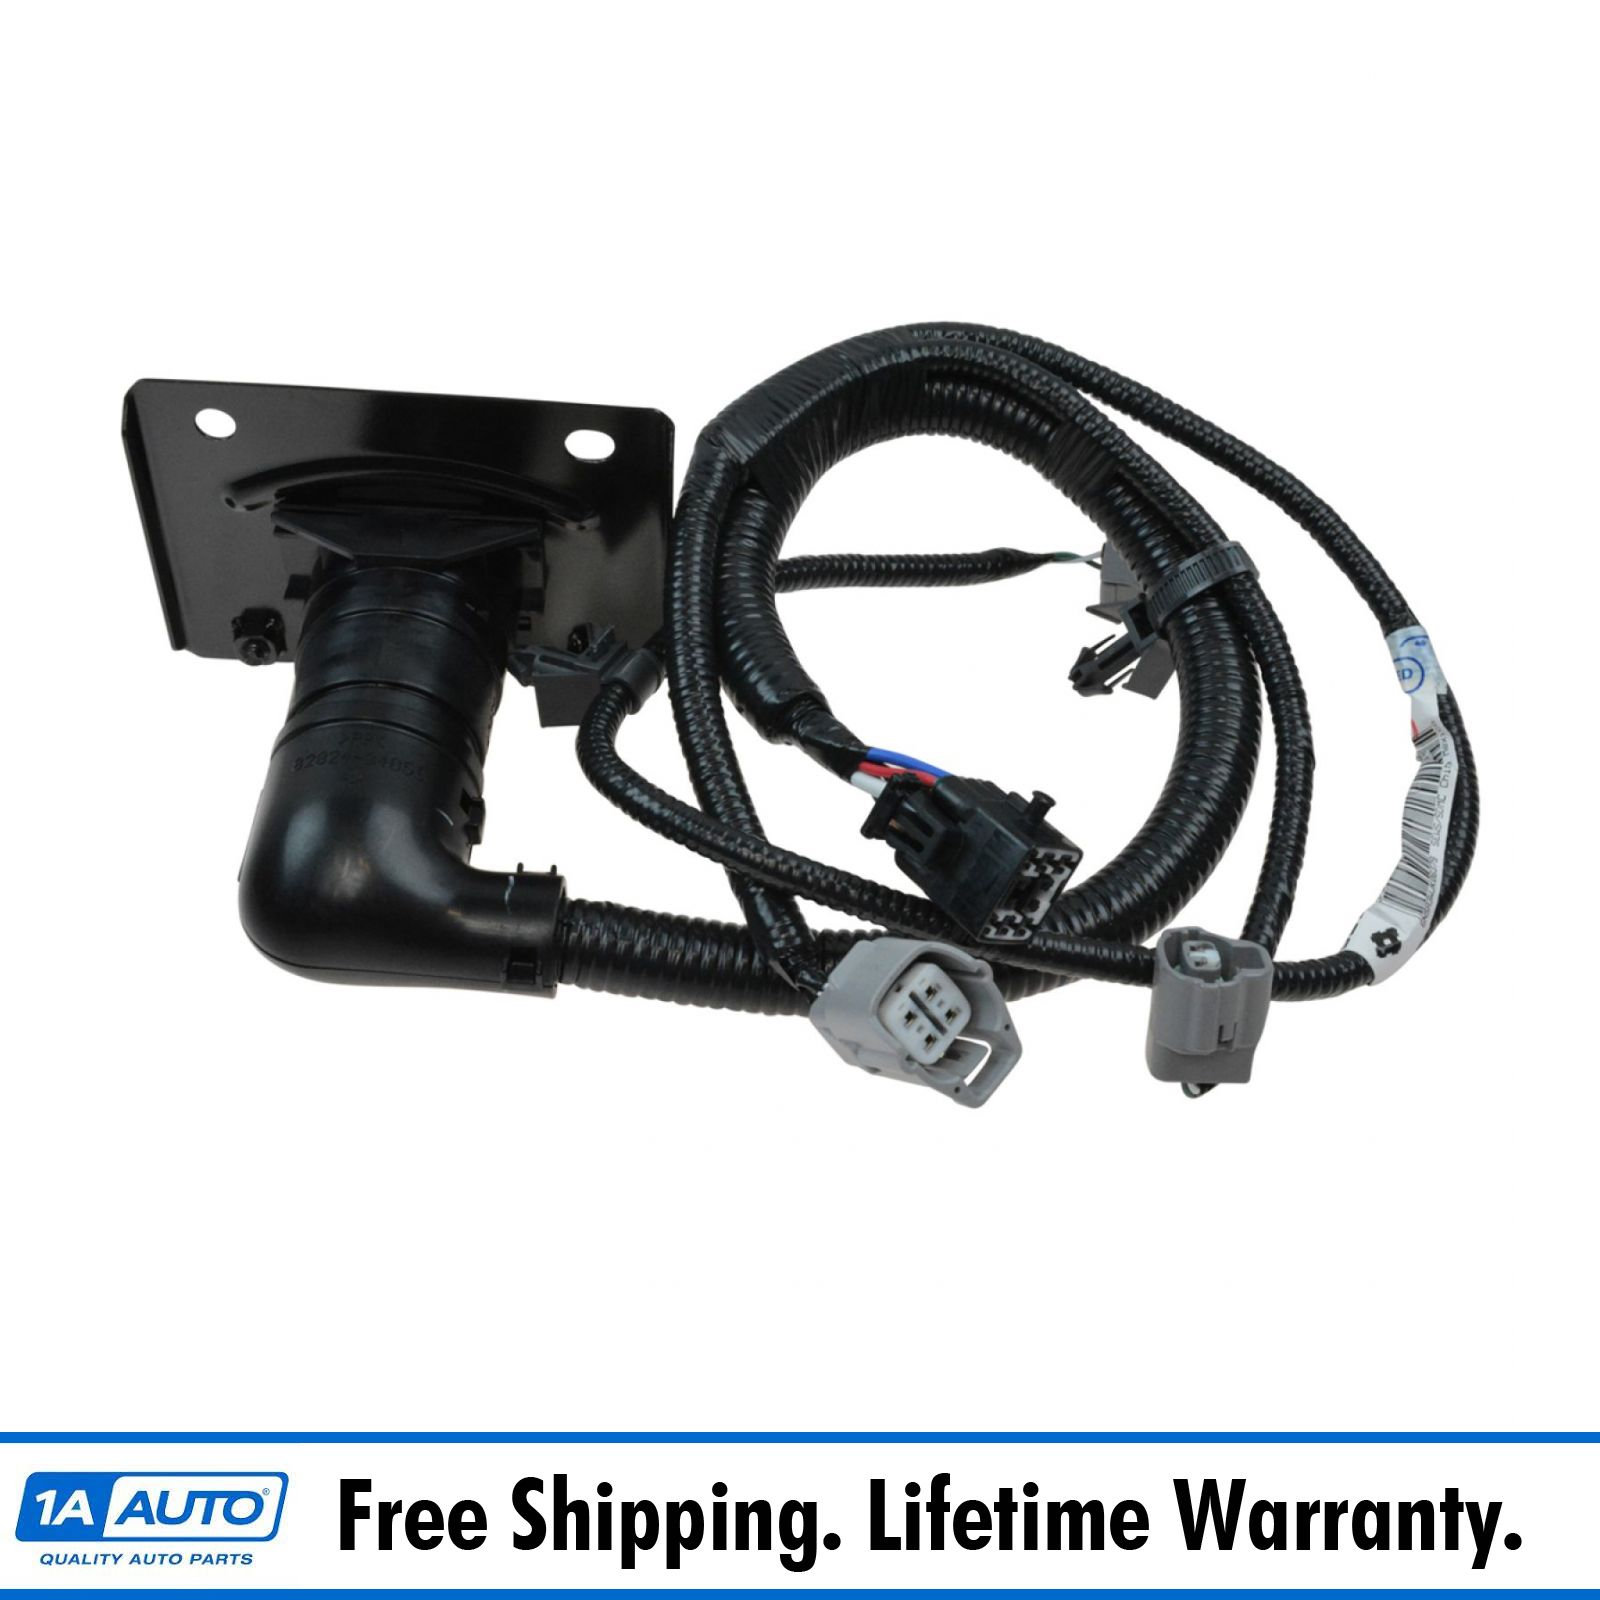 hight resolution of 2007 tundra tow package wiring harness wiring library 118367 tone trailer hitch wiring harness toyota tundra 2000 ebay